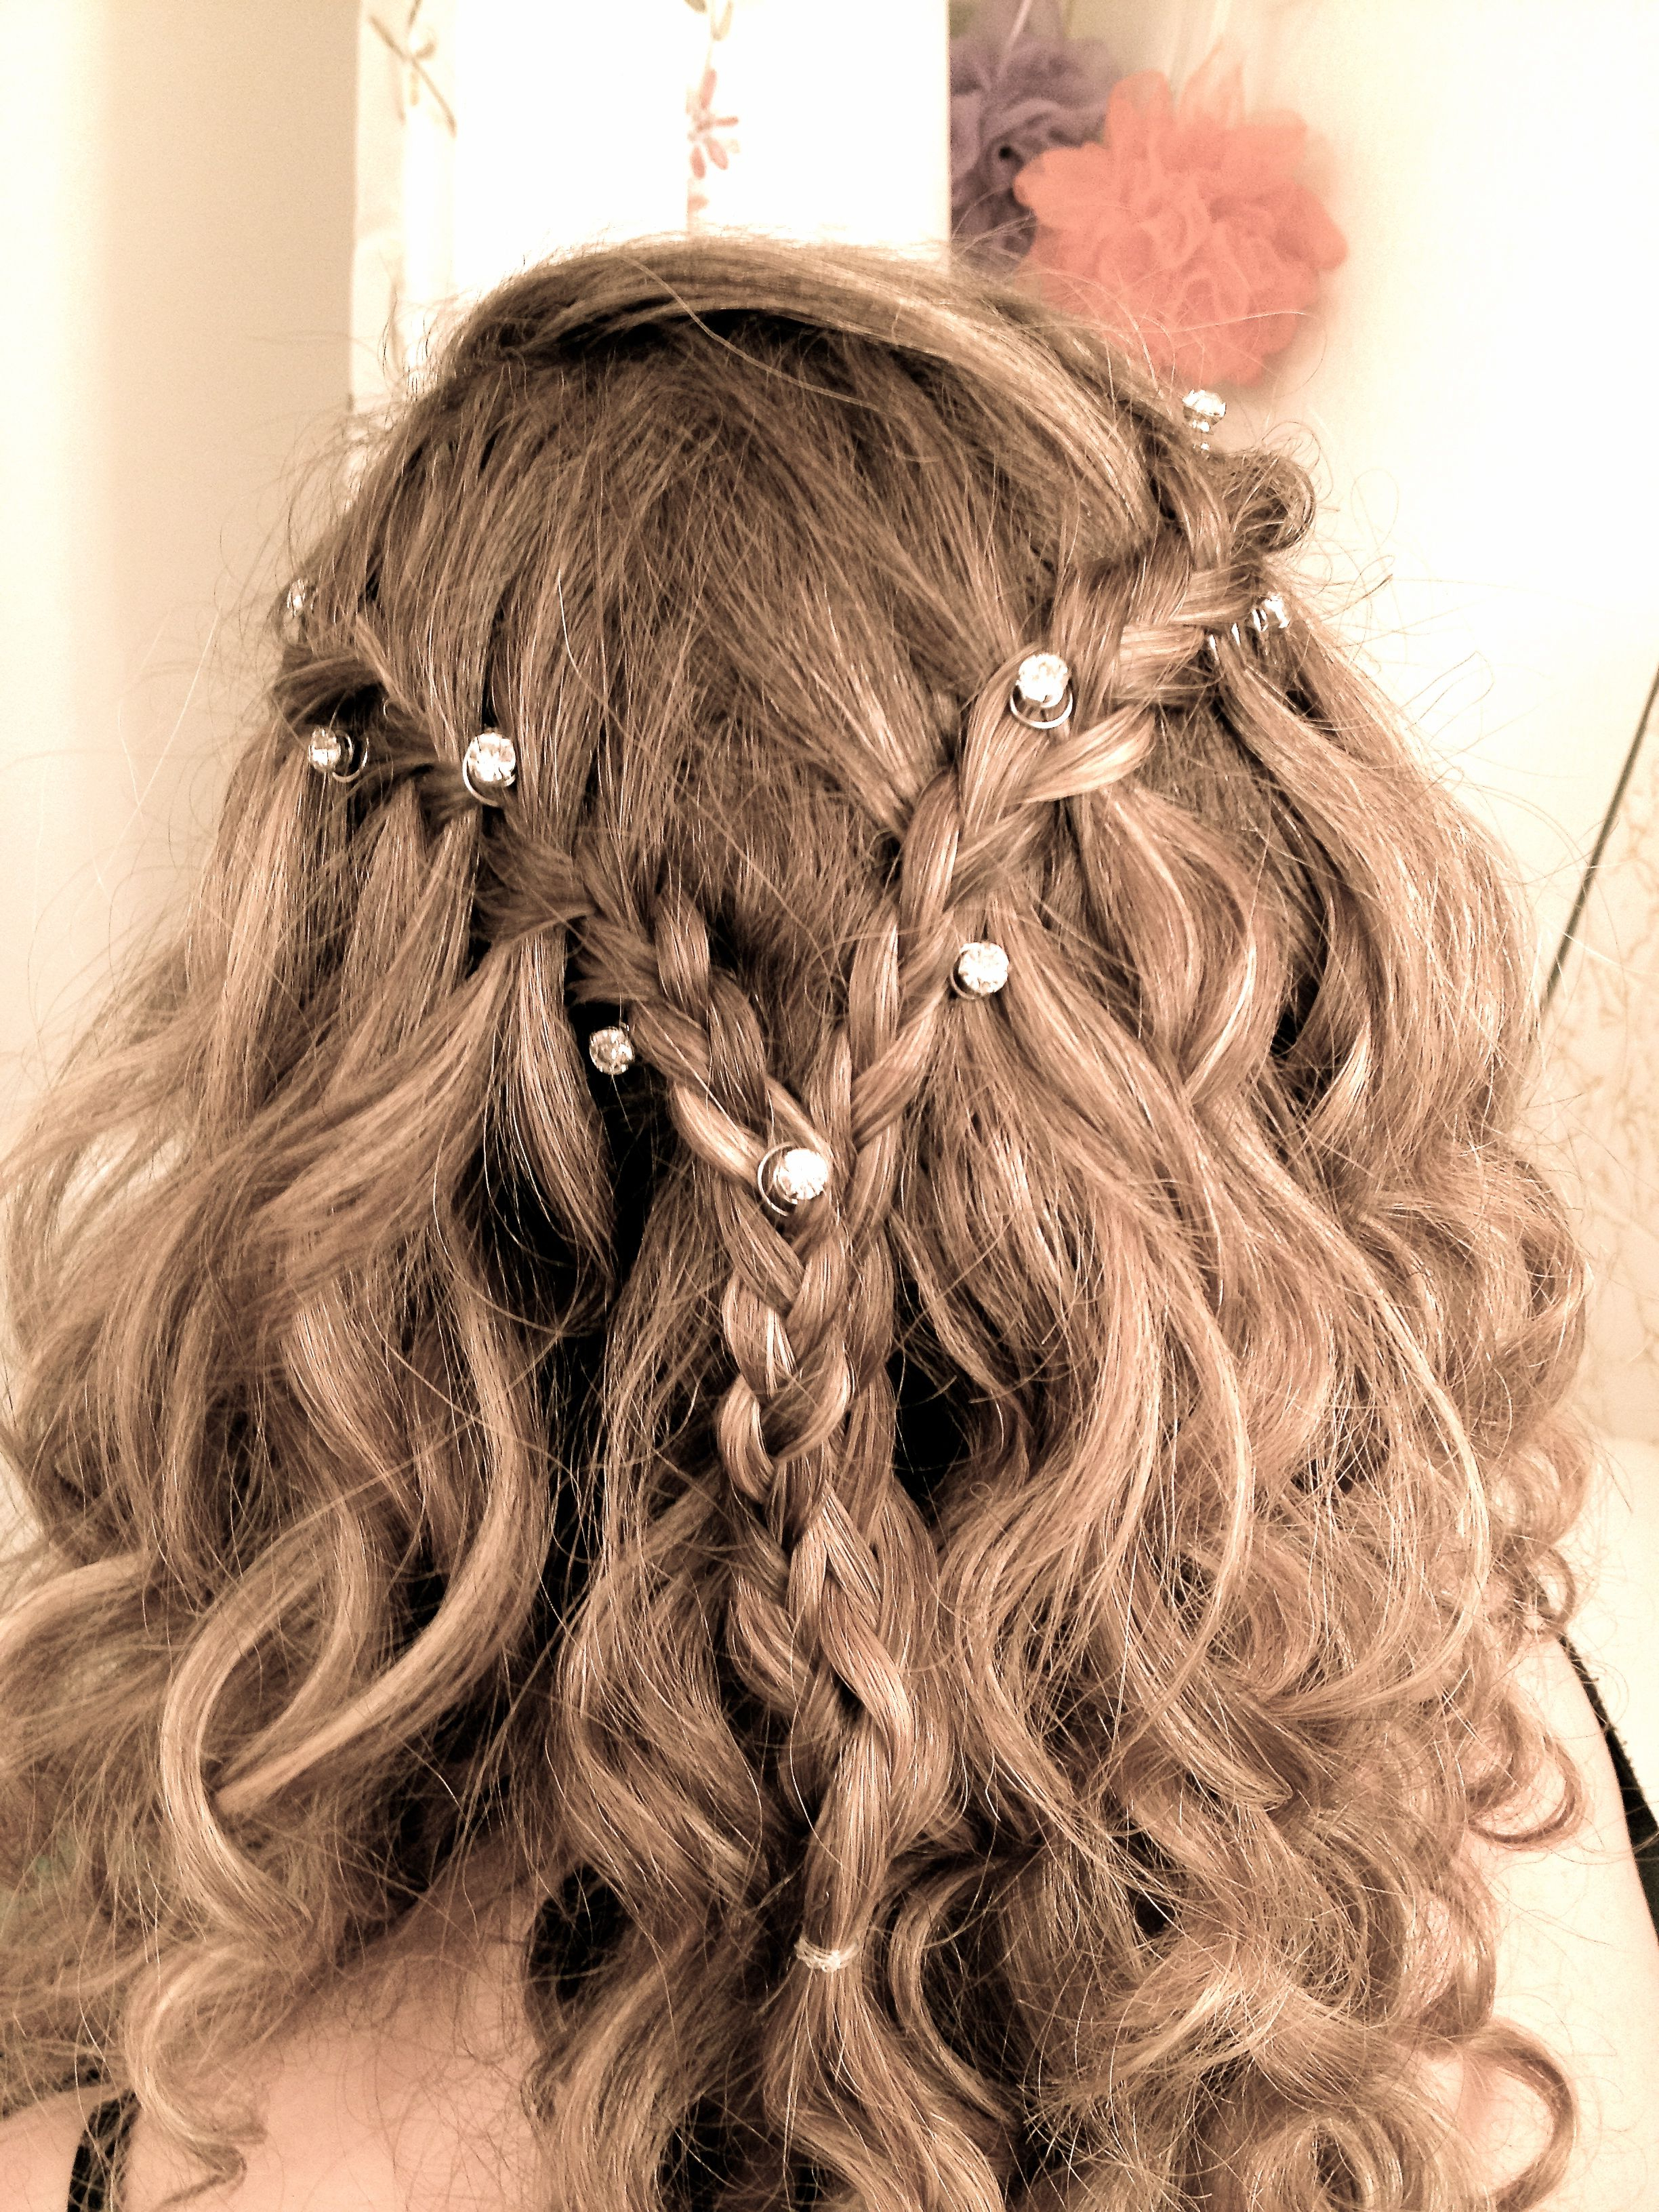 Waterfall Braid With Diamond Hair Pins. #love #waterfall #braid Intended For Widely Used Chic Waterfall Braid Prom Updos (Gallery 7 of 20)